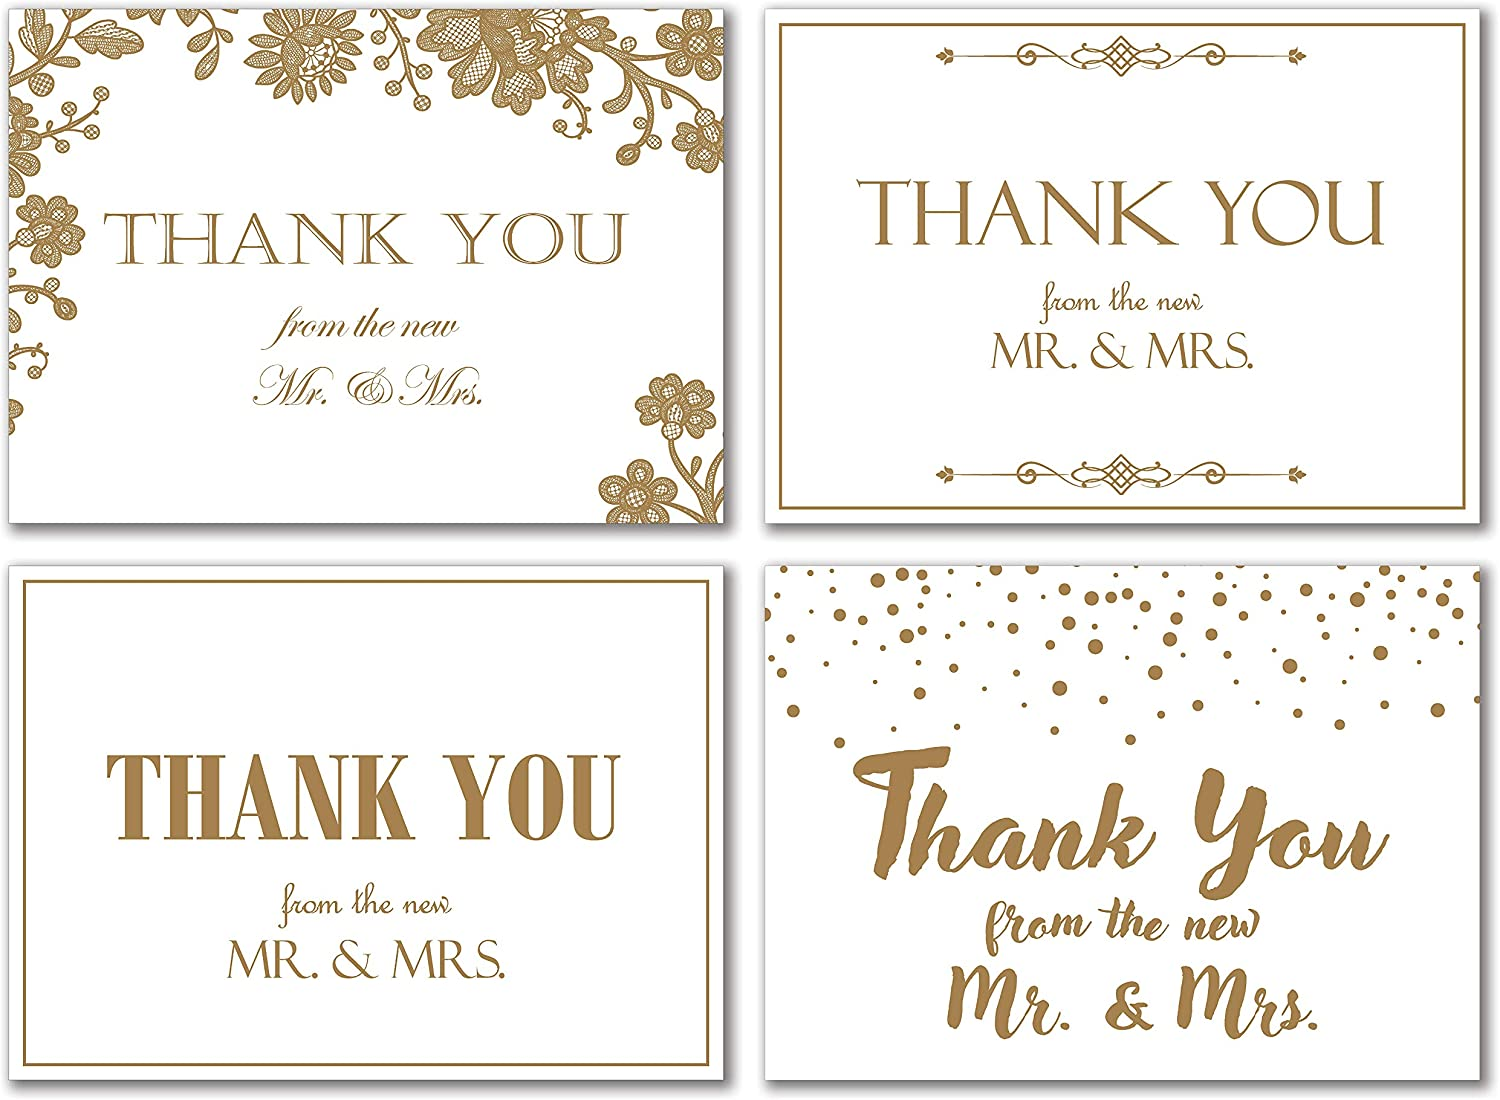 Shimmering Gold Wedding Thank You Cards - Pack of 48